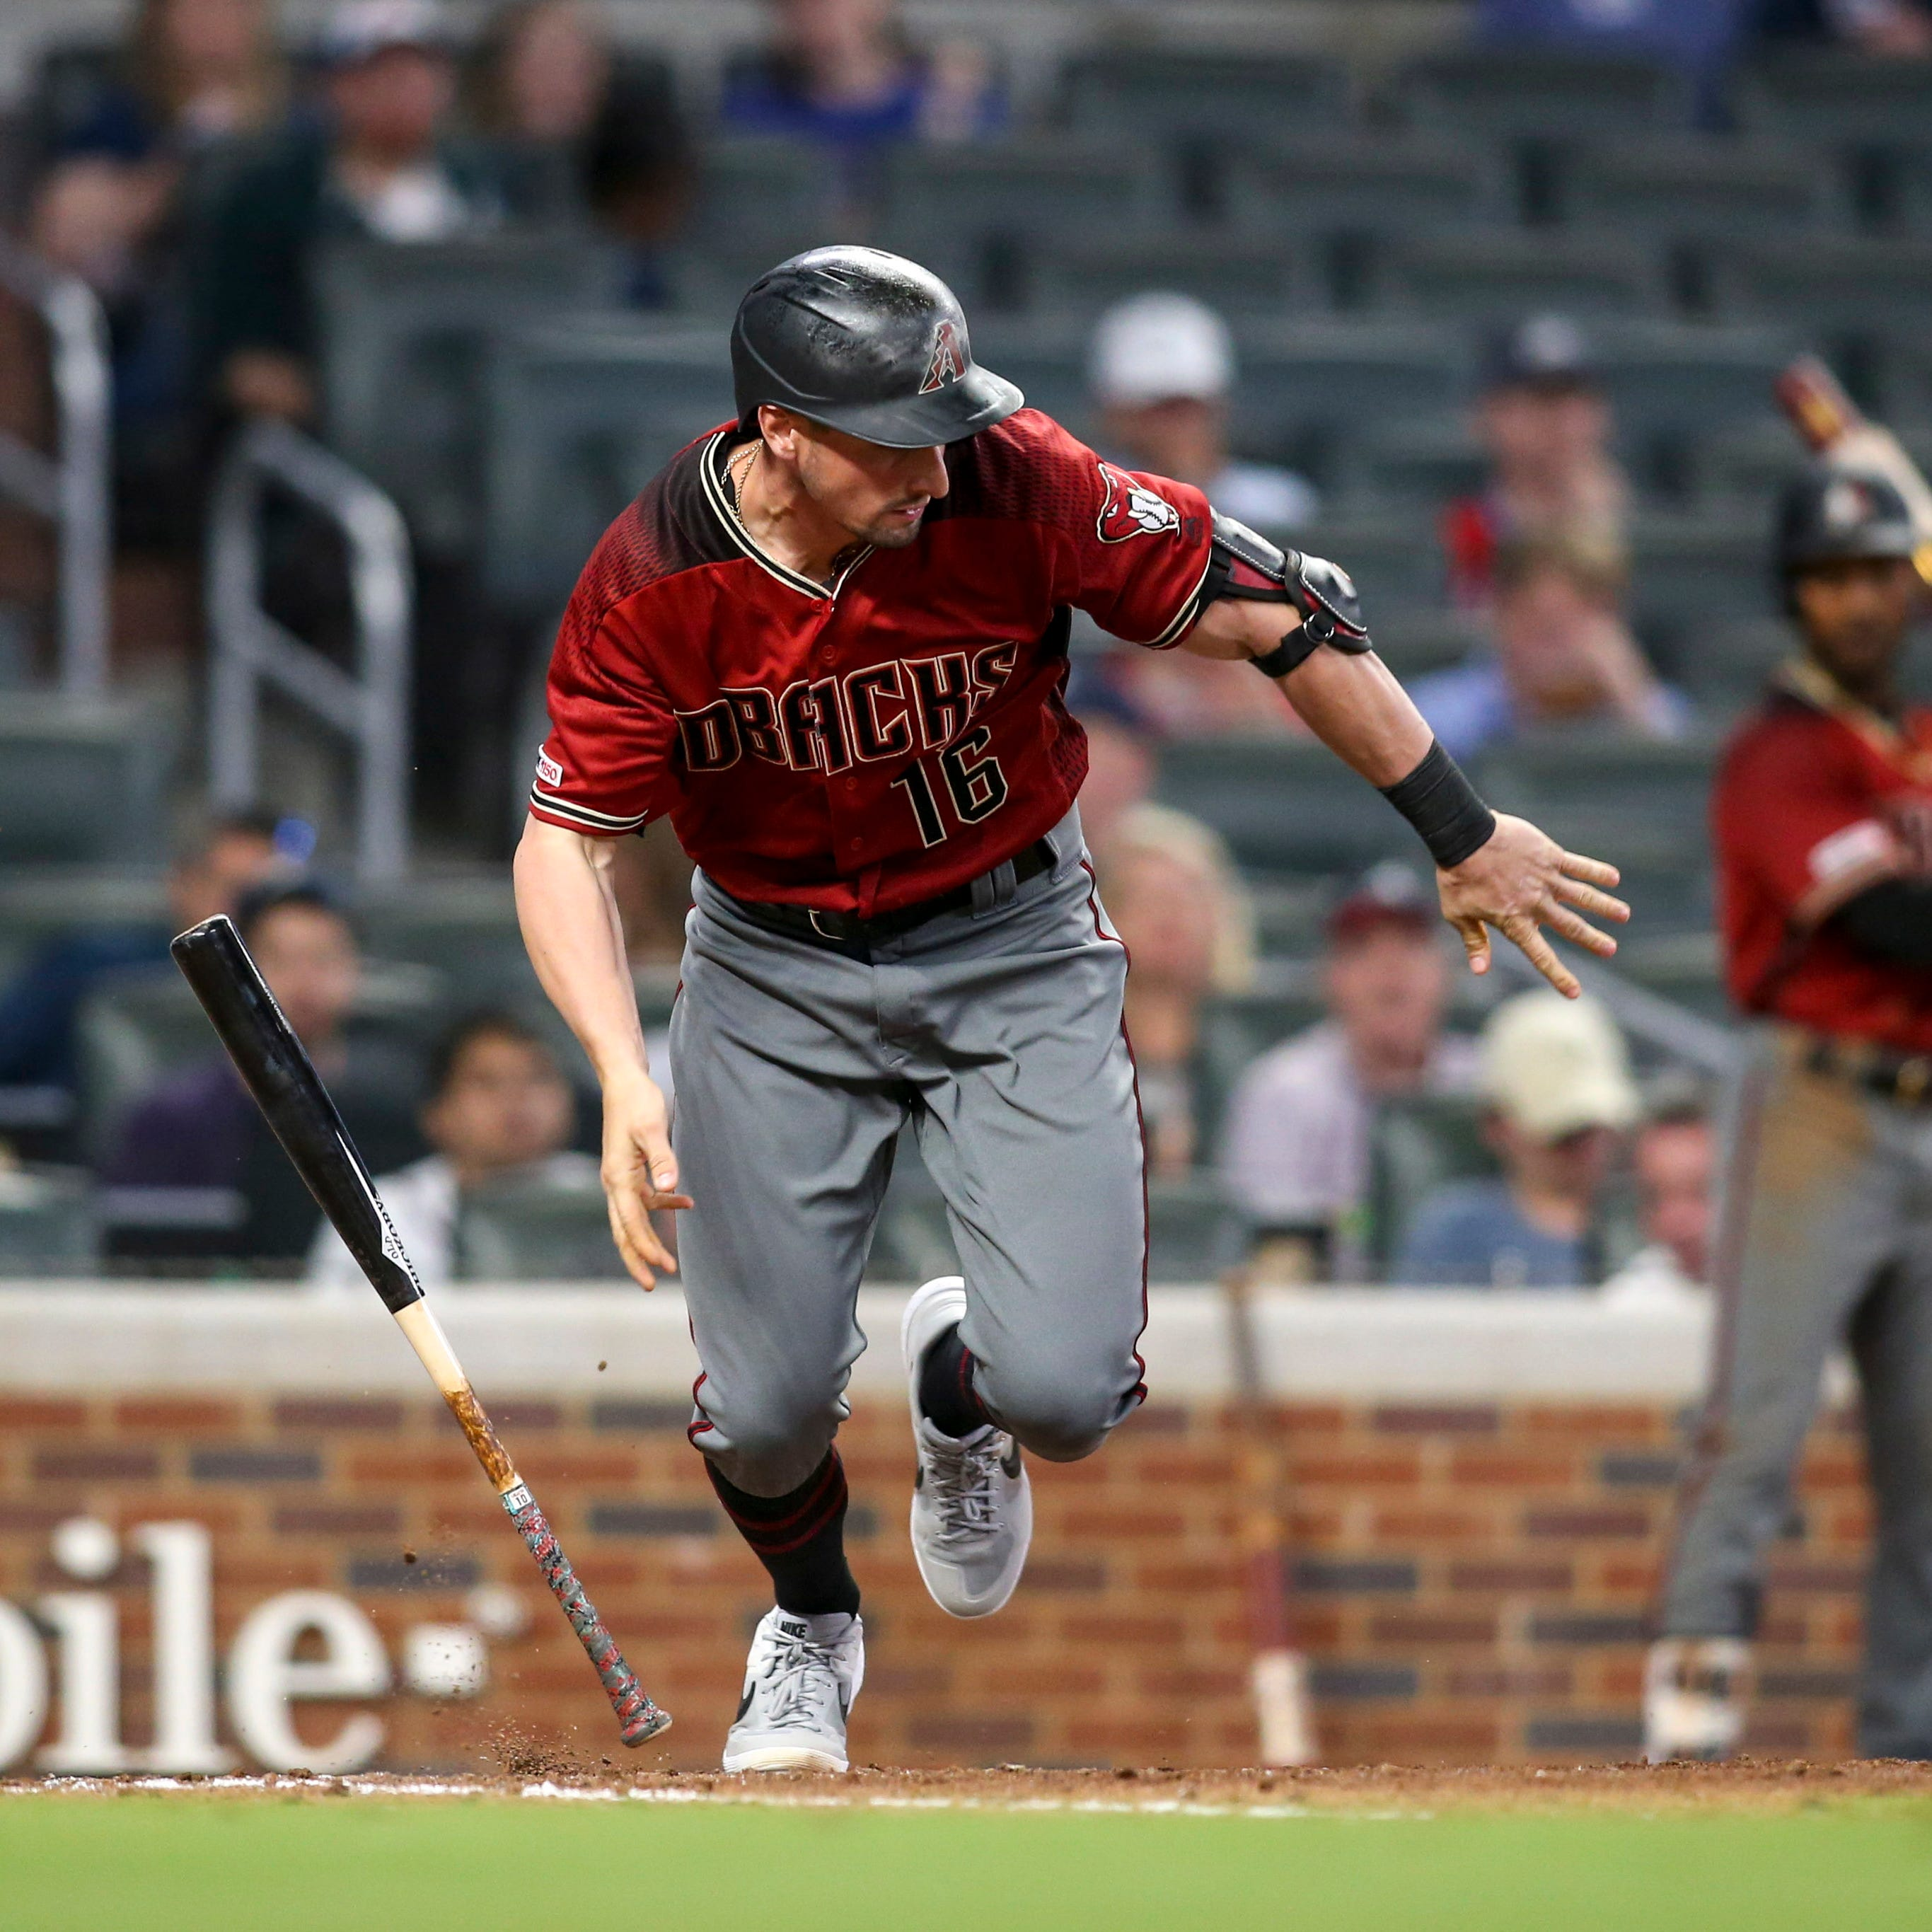 Tim Locastro's bunt sparks Diamondbacks in winning rally over Braves